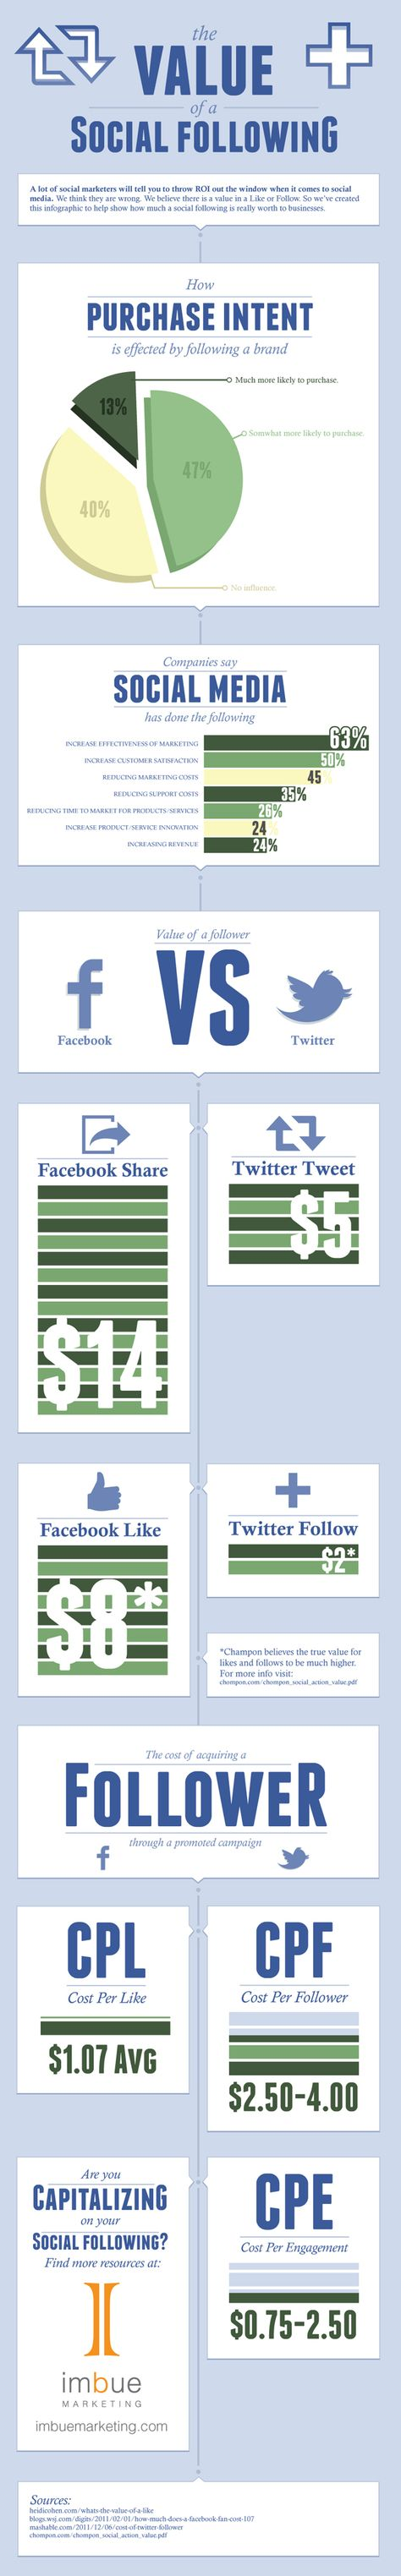 Infographic: What's a Facebook Like, Twitter Follower Worth to Brands?